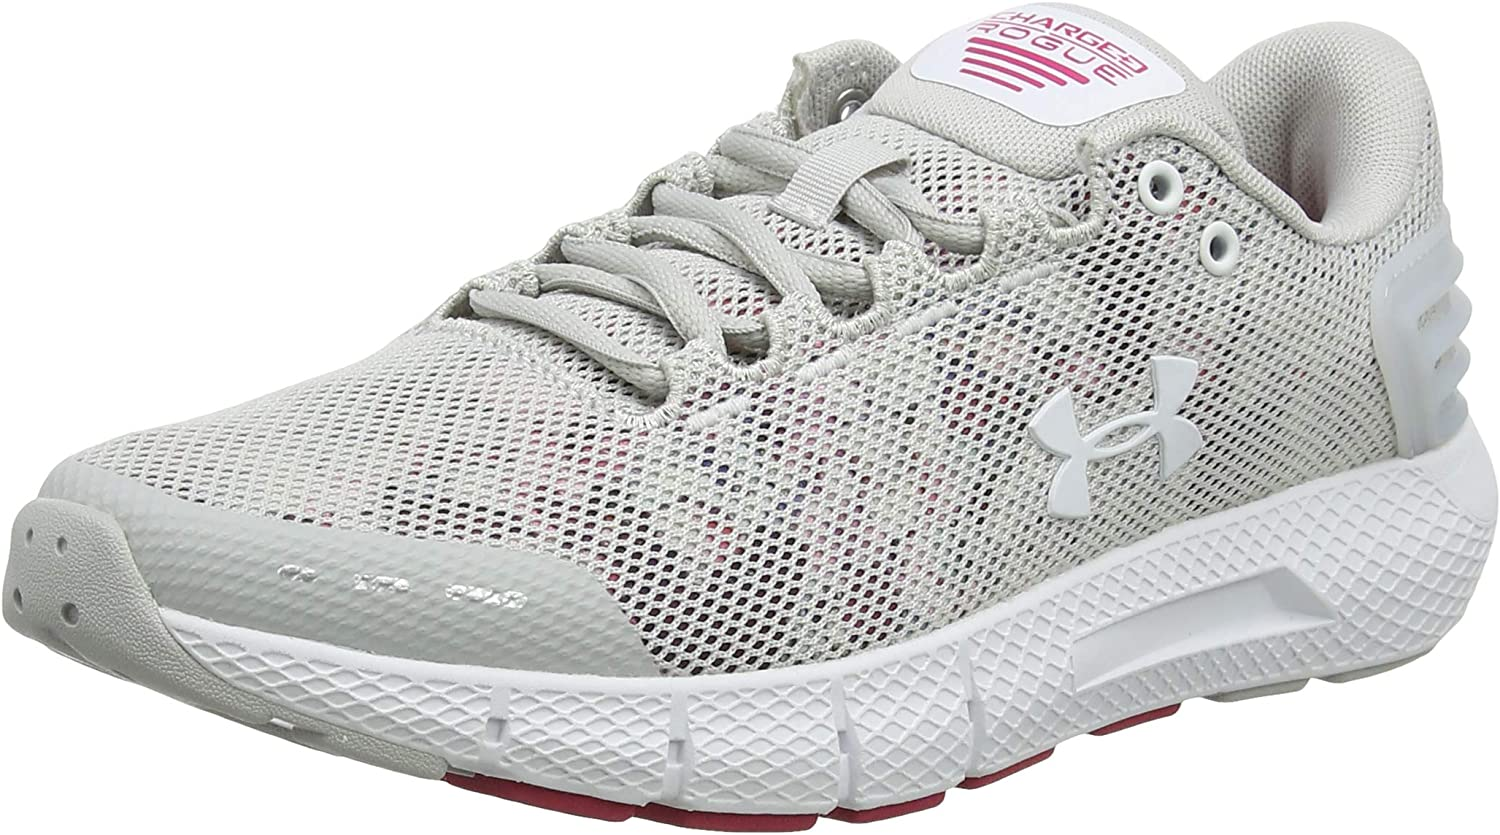 Under Armour Charged Rogue Amp, Zapatillas de Running para Mujer ...